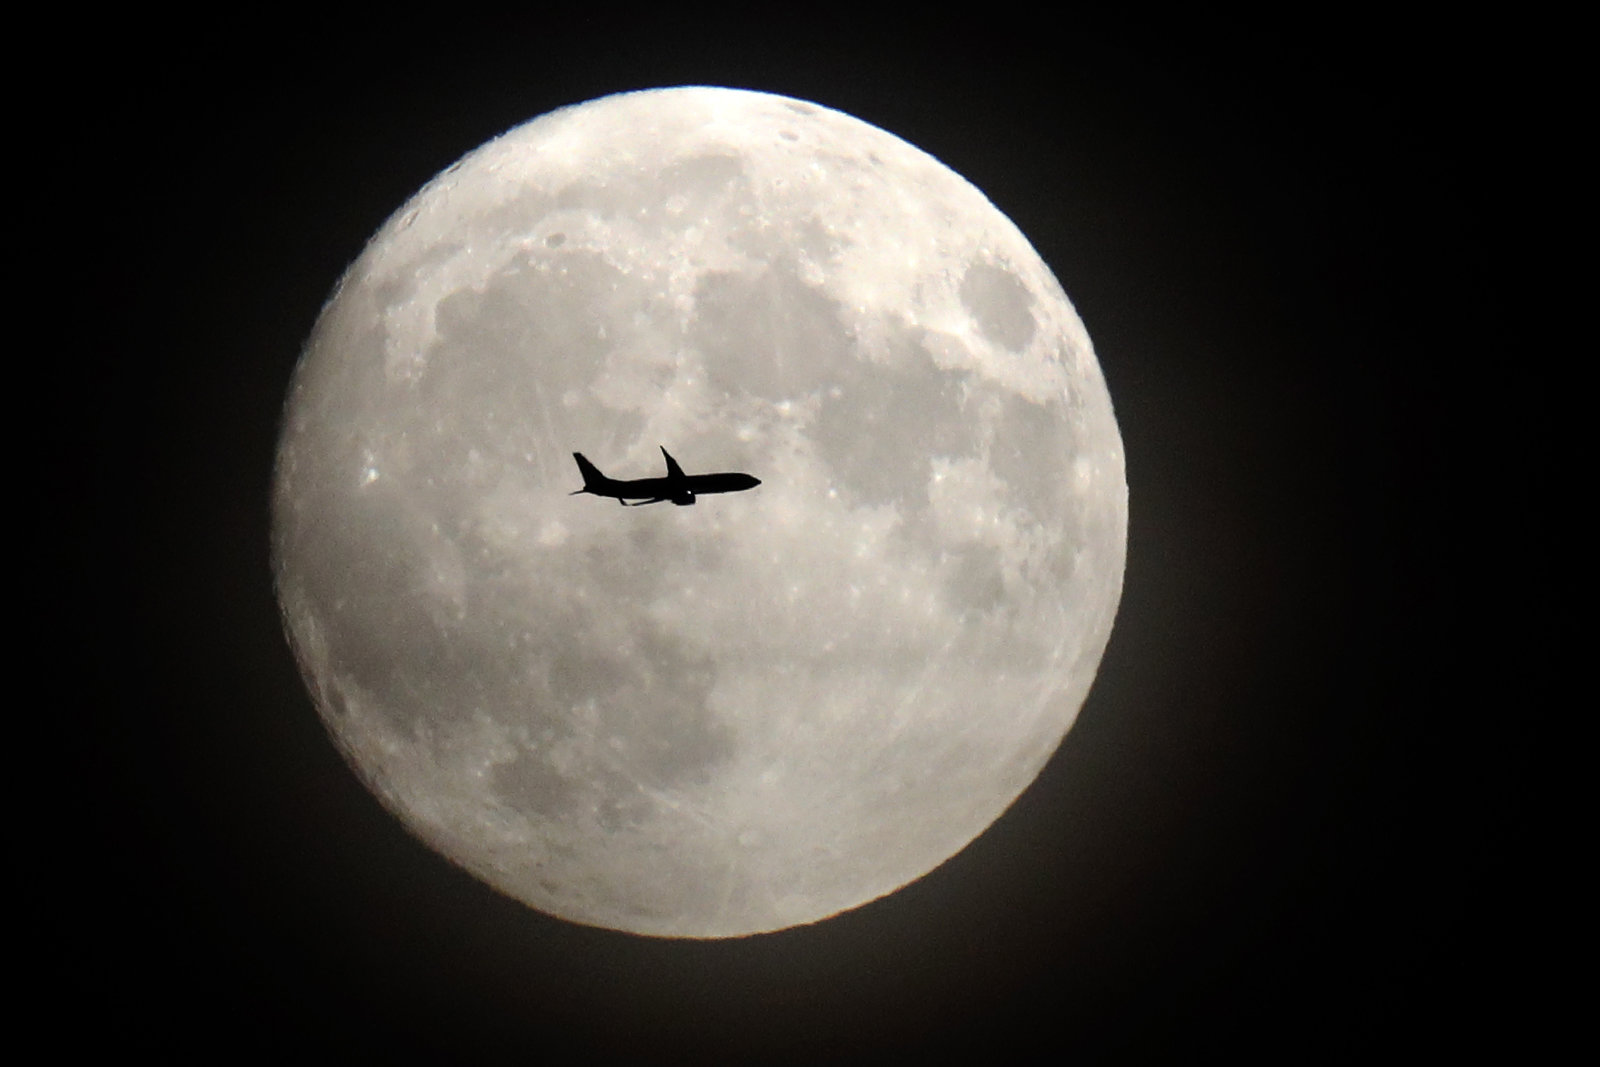 Look for December's Supermoon this Weekend!